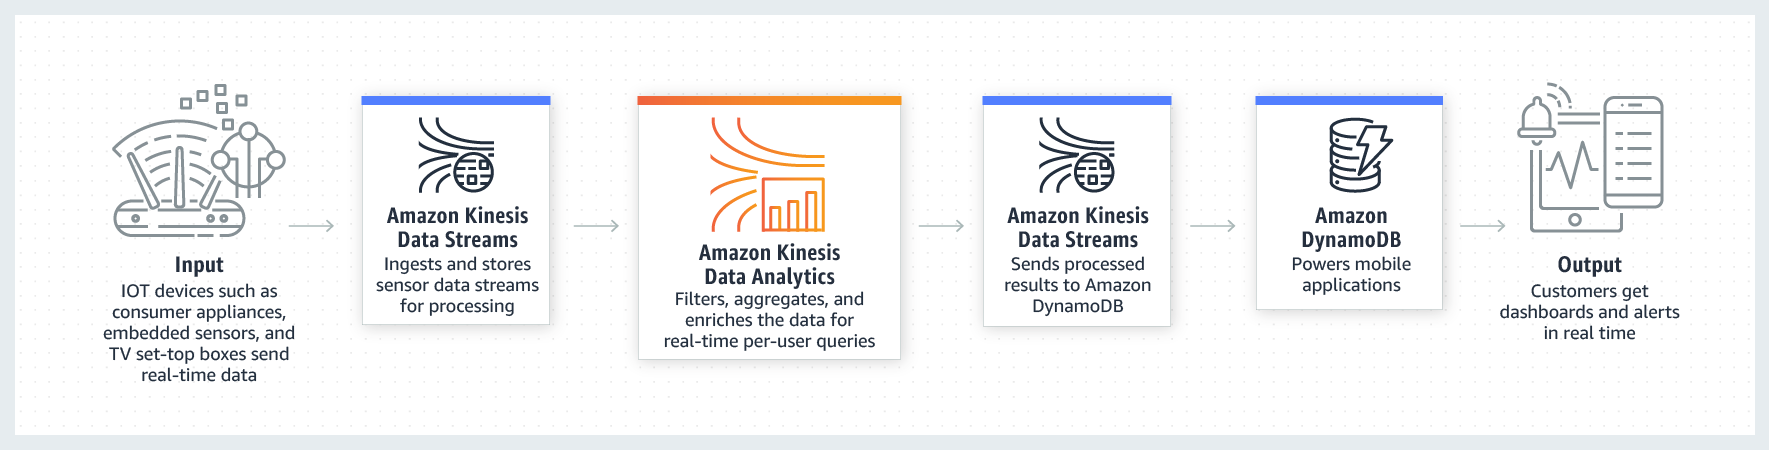 Product-Page-Diagram_Kinesis-Data-Analytics-IoT